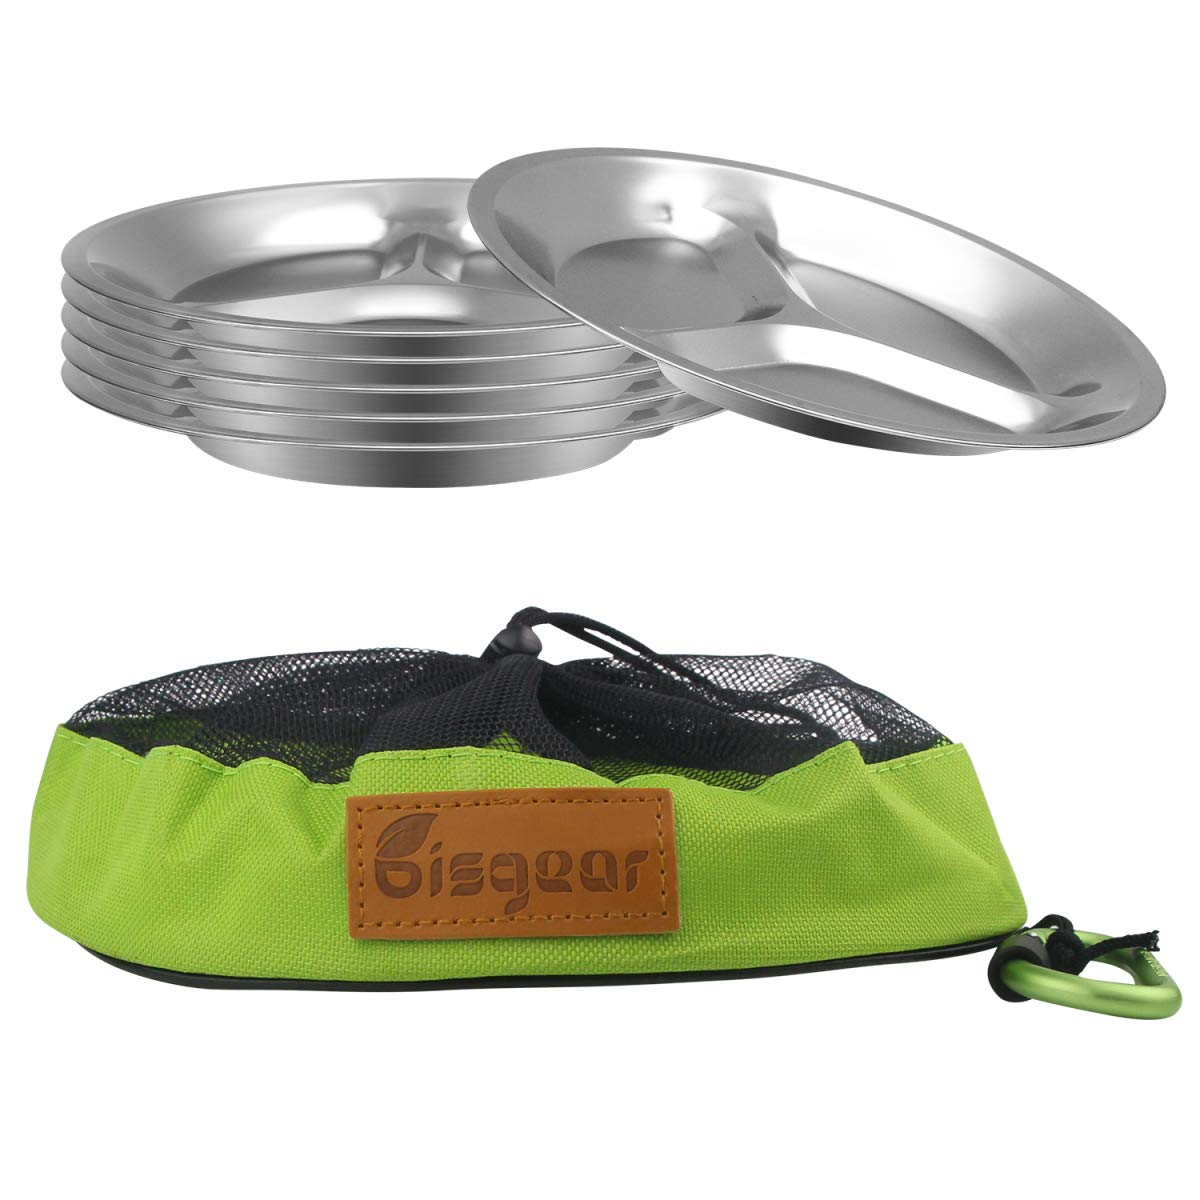 Bisgear 10.25 inch Stainless Steel Round Divided Plates Pack of 6 with Carabiner, Dishcloth and Mesh Travel Bag - Lightweight BPA Free Sectioned Plates for Outdoor Camping by Bisgear